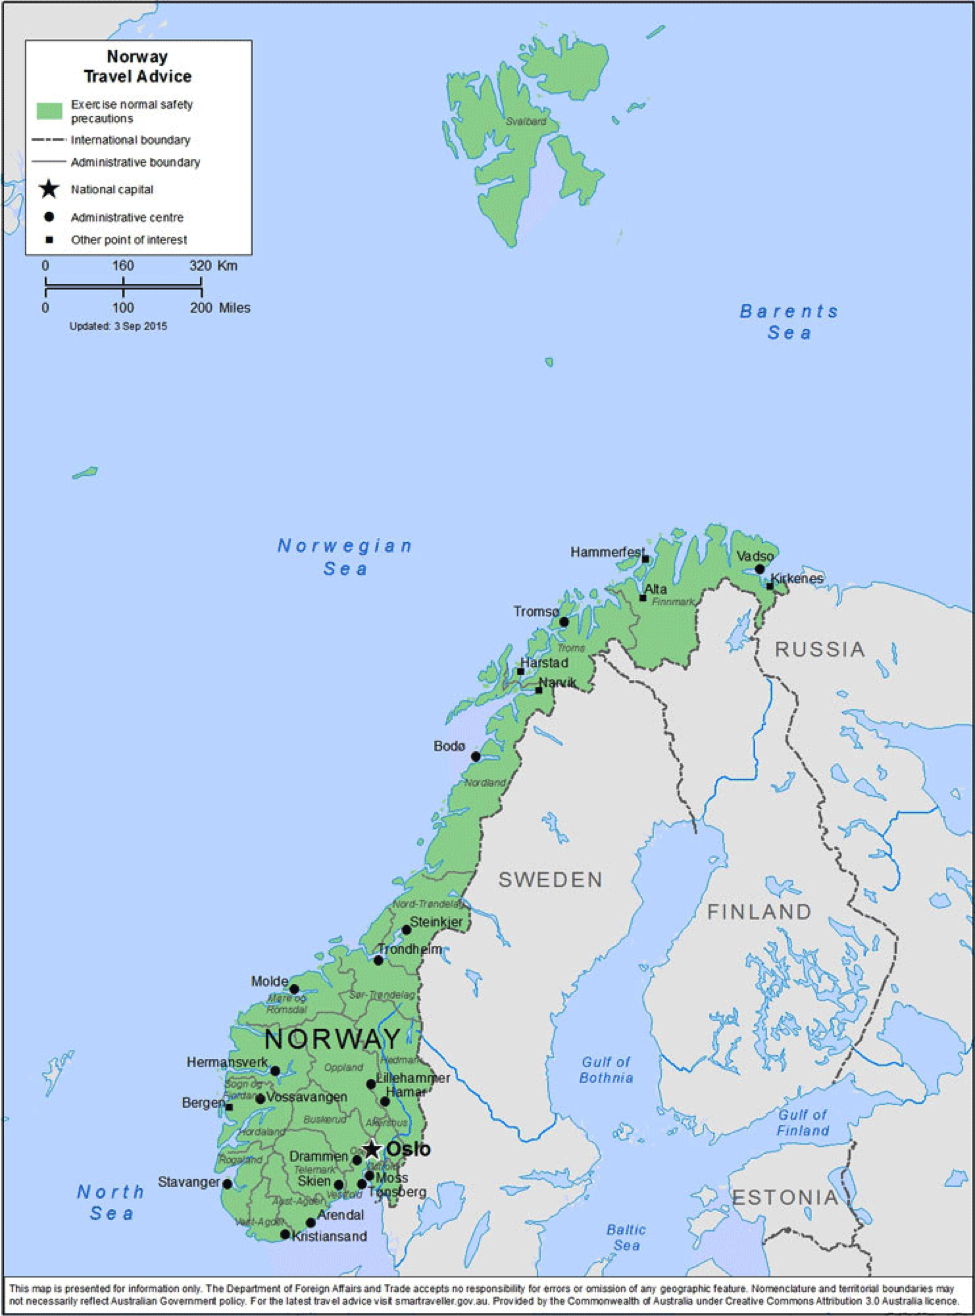 Norway-Travel-Health-Insurance | AardvarkCompare.com